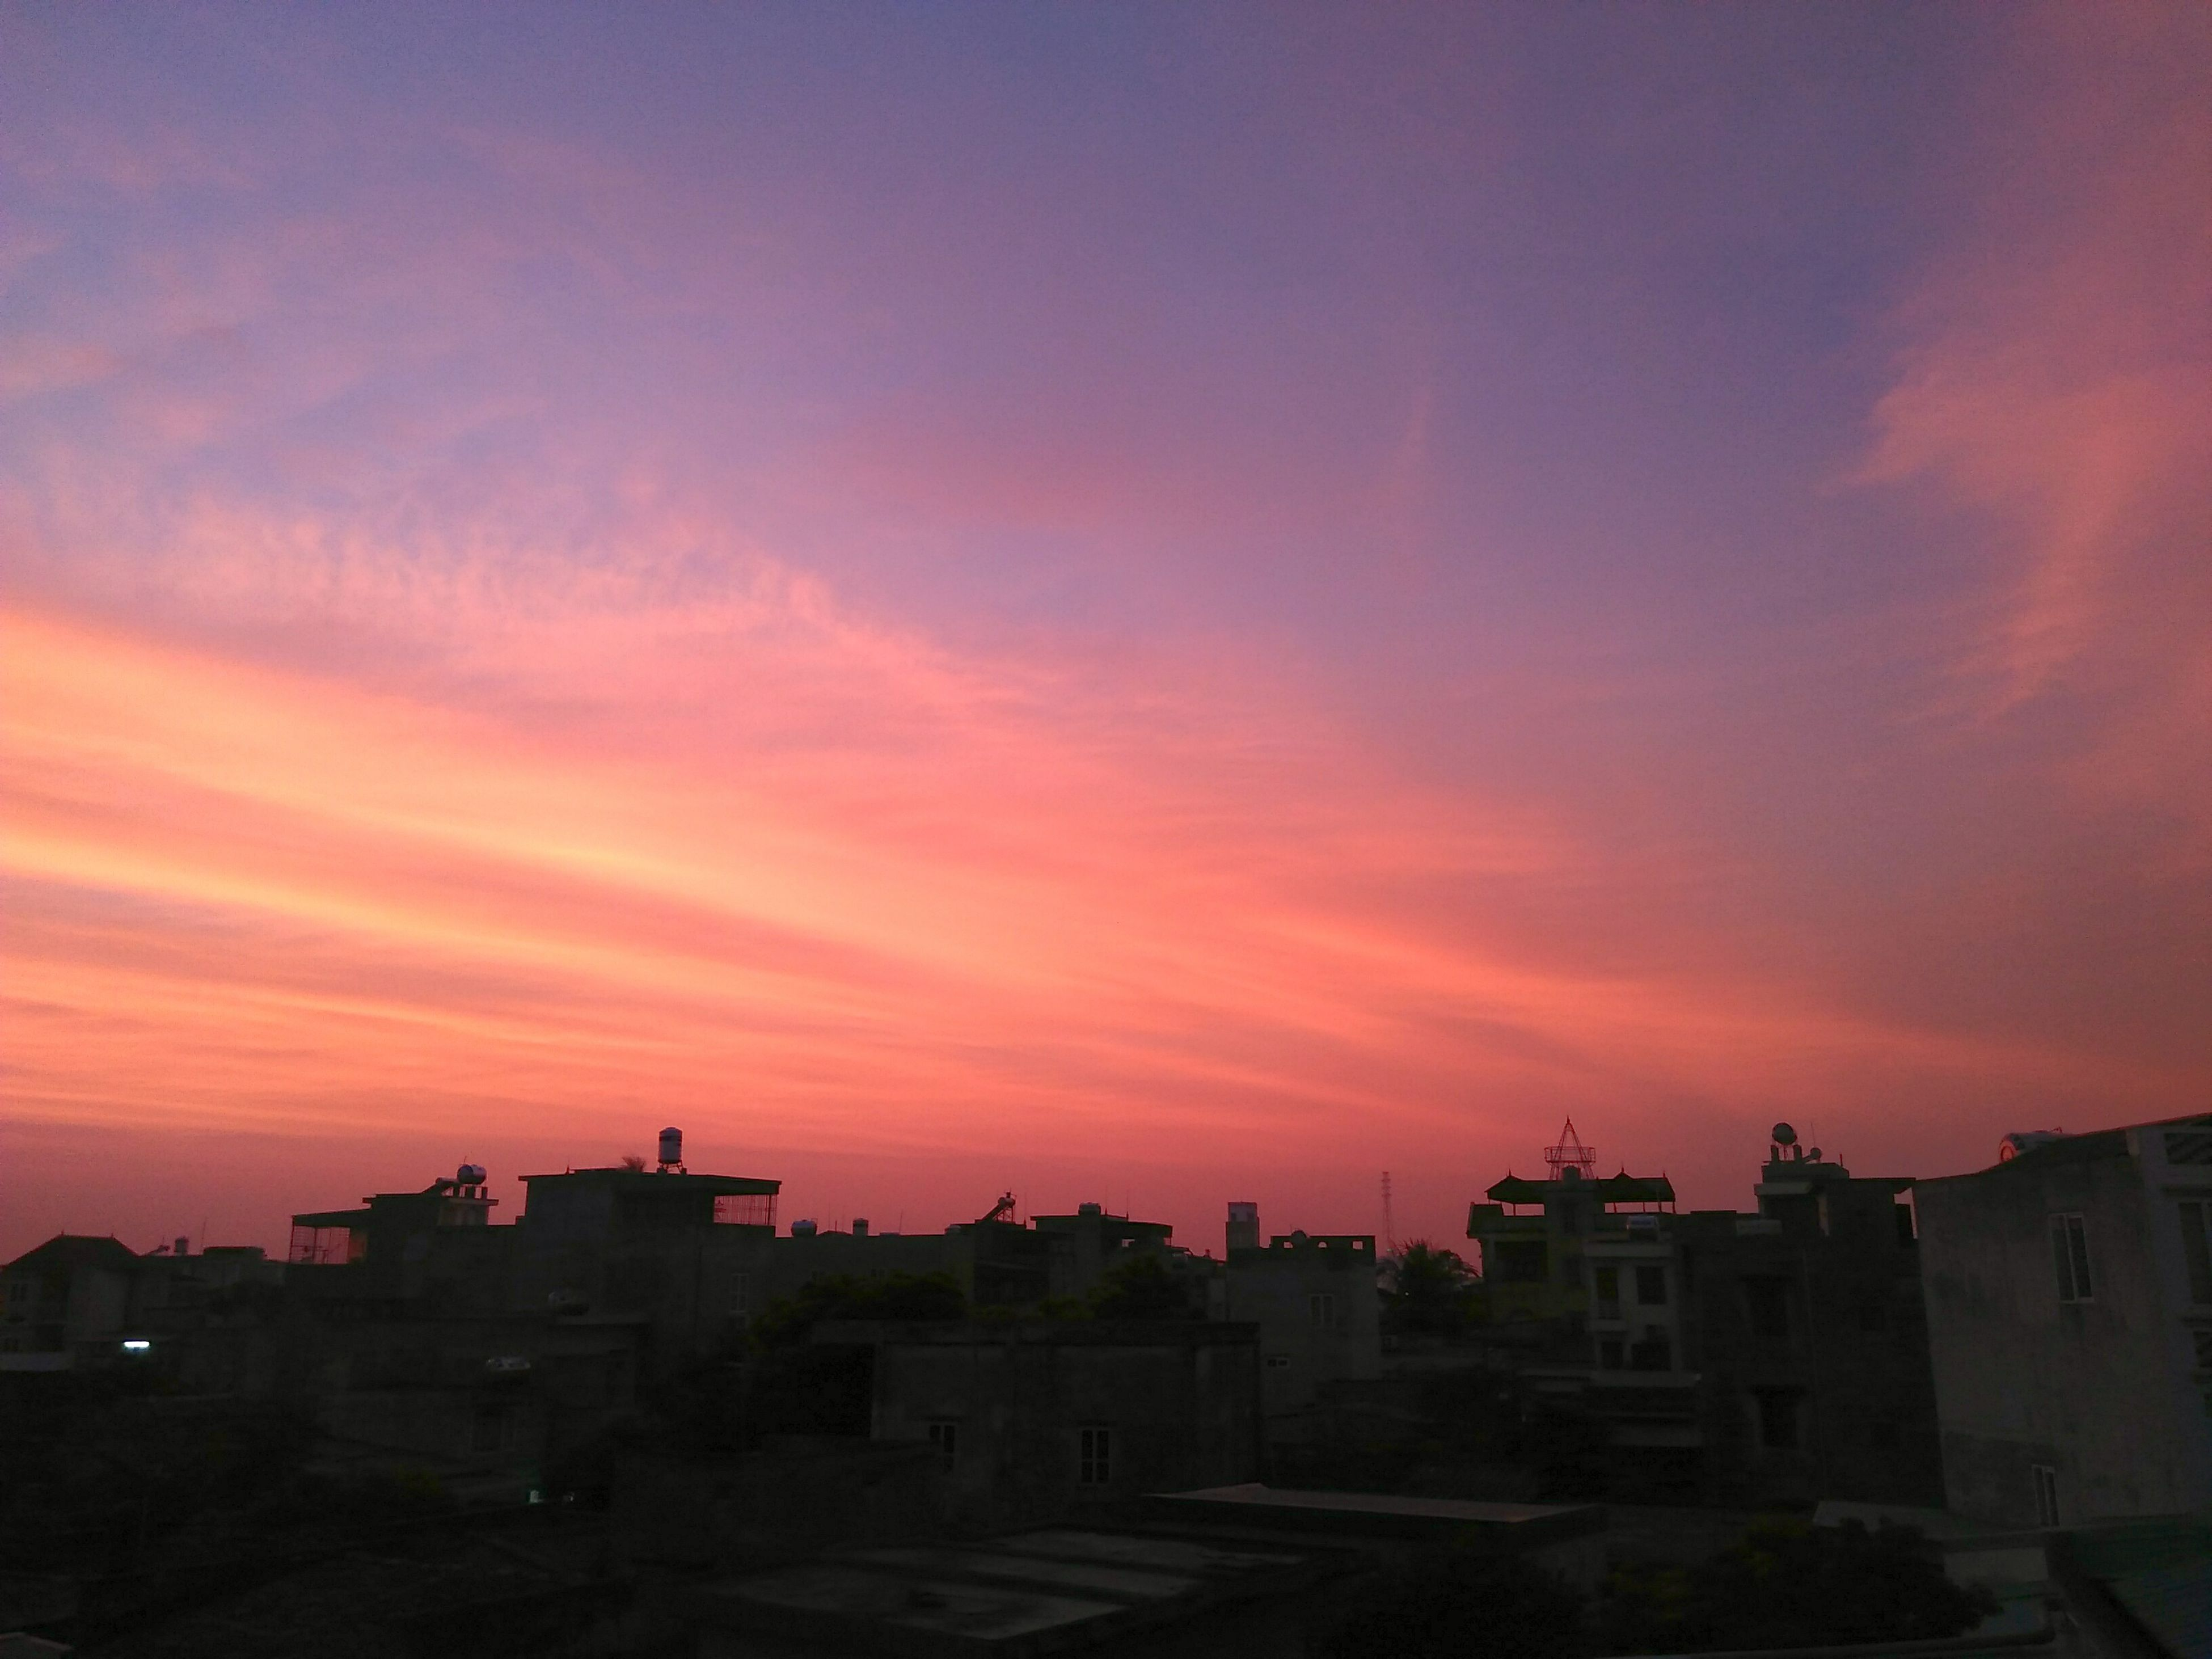 architecture, sunset, built structure, building exterior, orange color, sky, city, cloud - sky, cloud, scenics, city life, beauty in nature, romantic sky, exterior, outdoors, dramatic sky, majestic, nature, residential district, tranquility, no people, tranquil scene, atmospheric mood, pink color, town